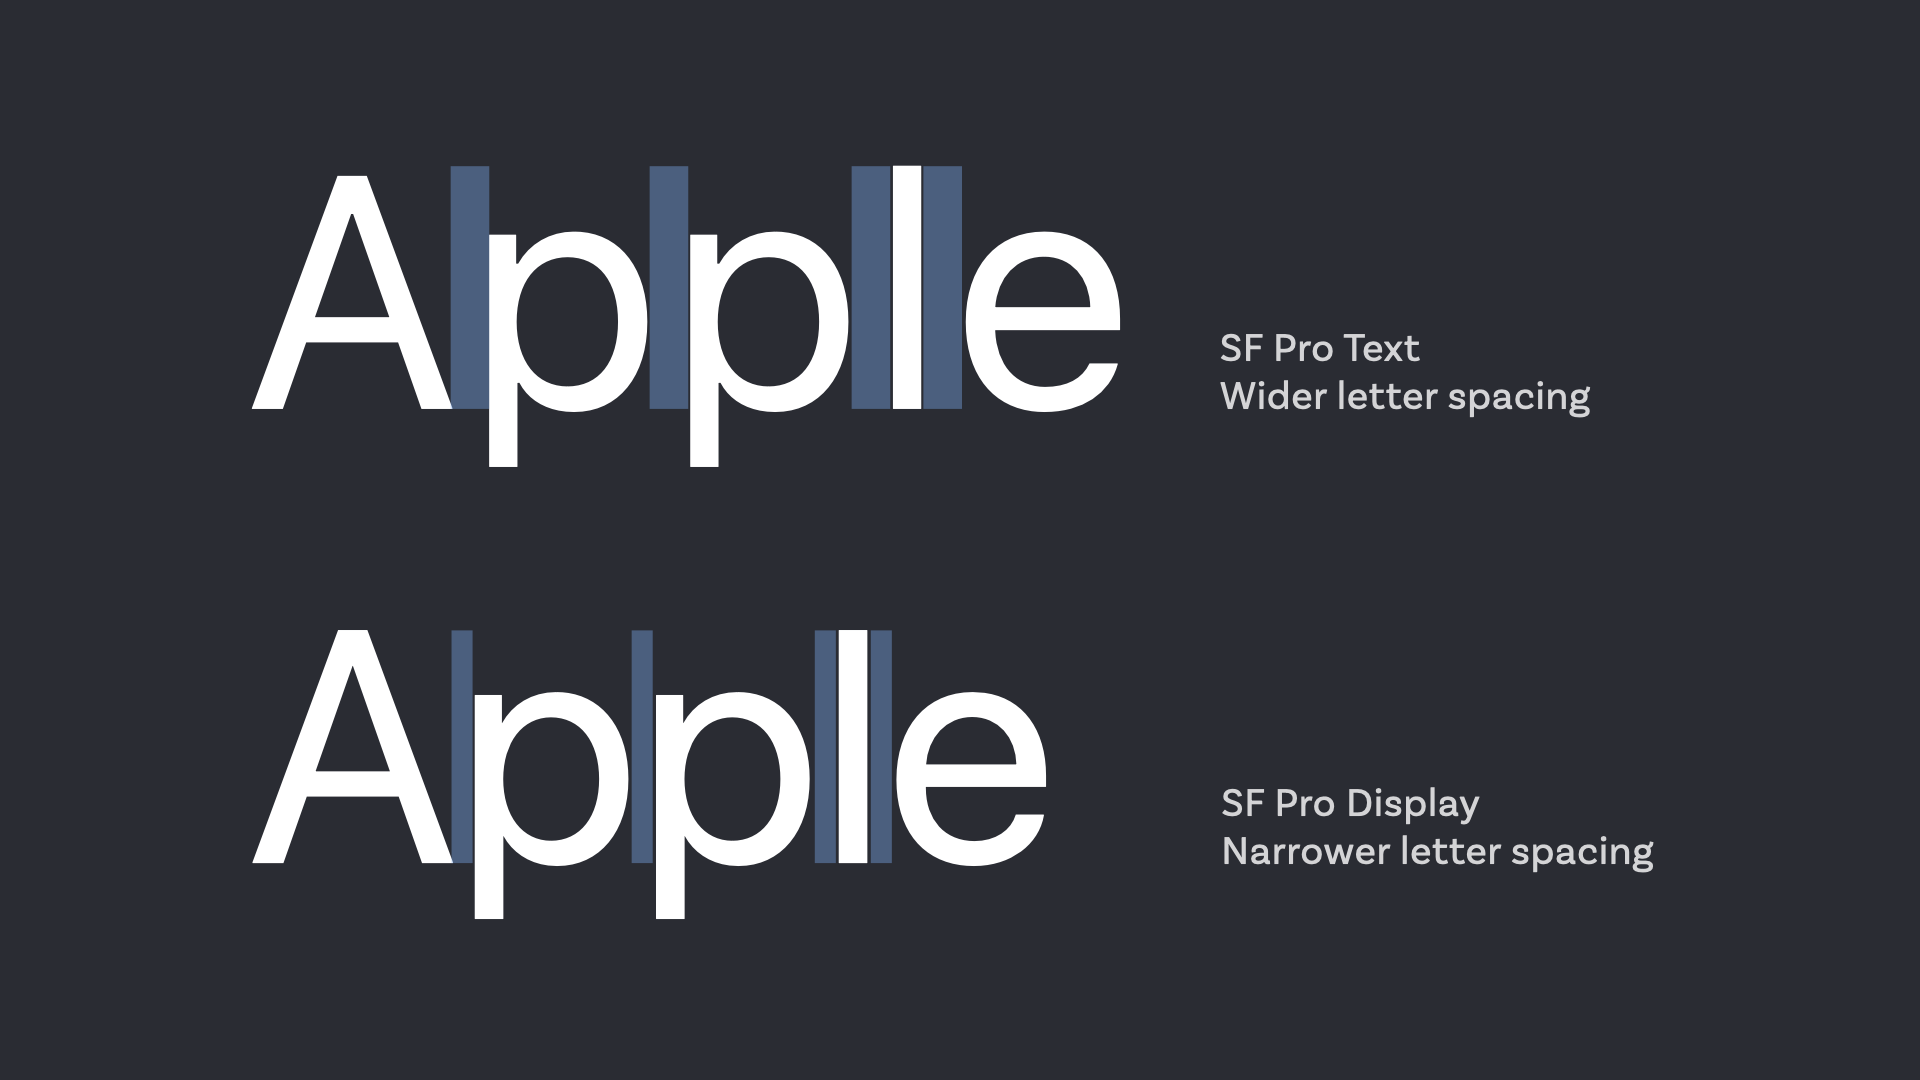 SF Pro Text has wider letter spacing, SF Pro Display has narrower letter spacing.